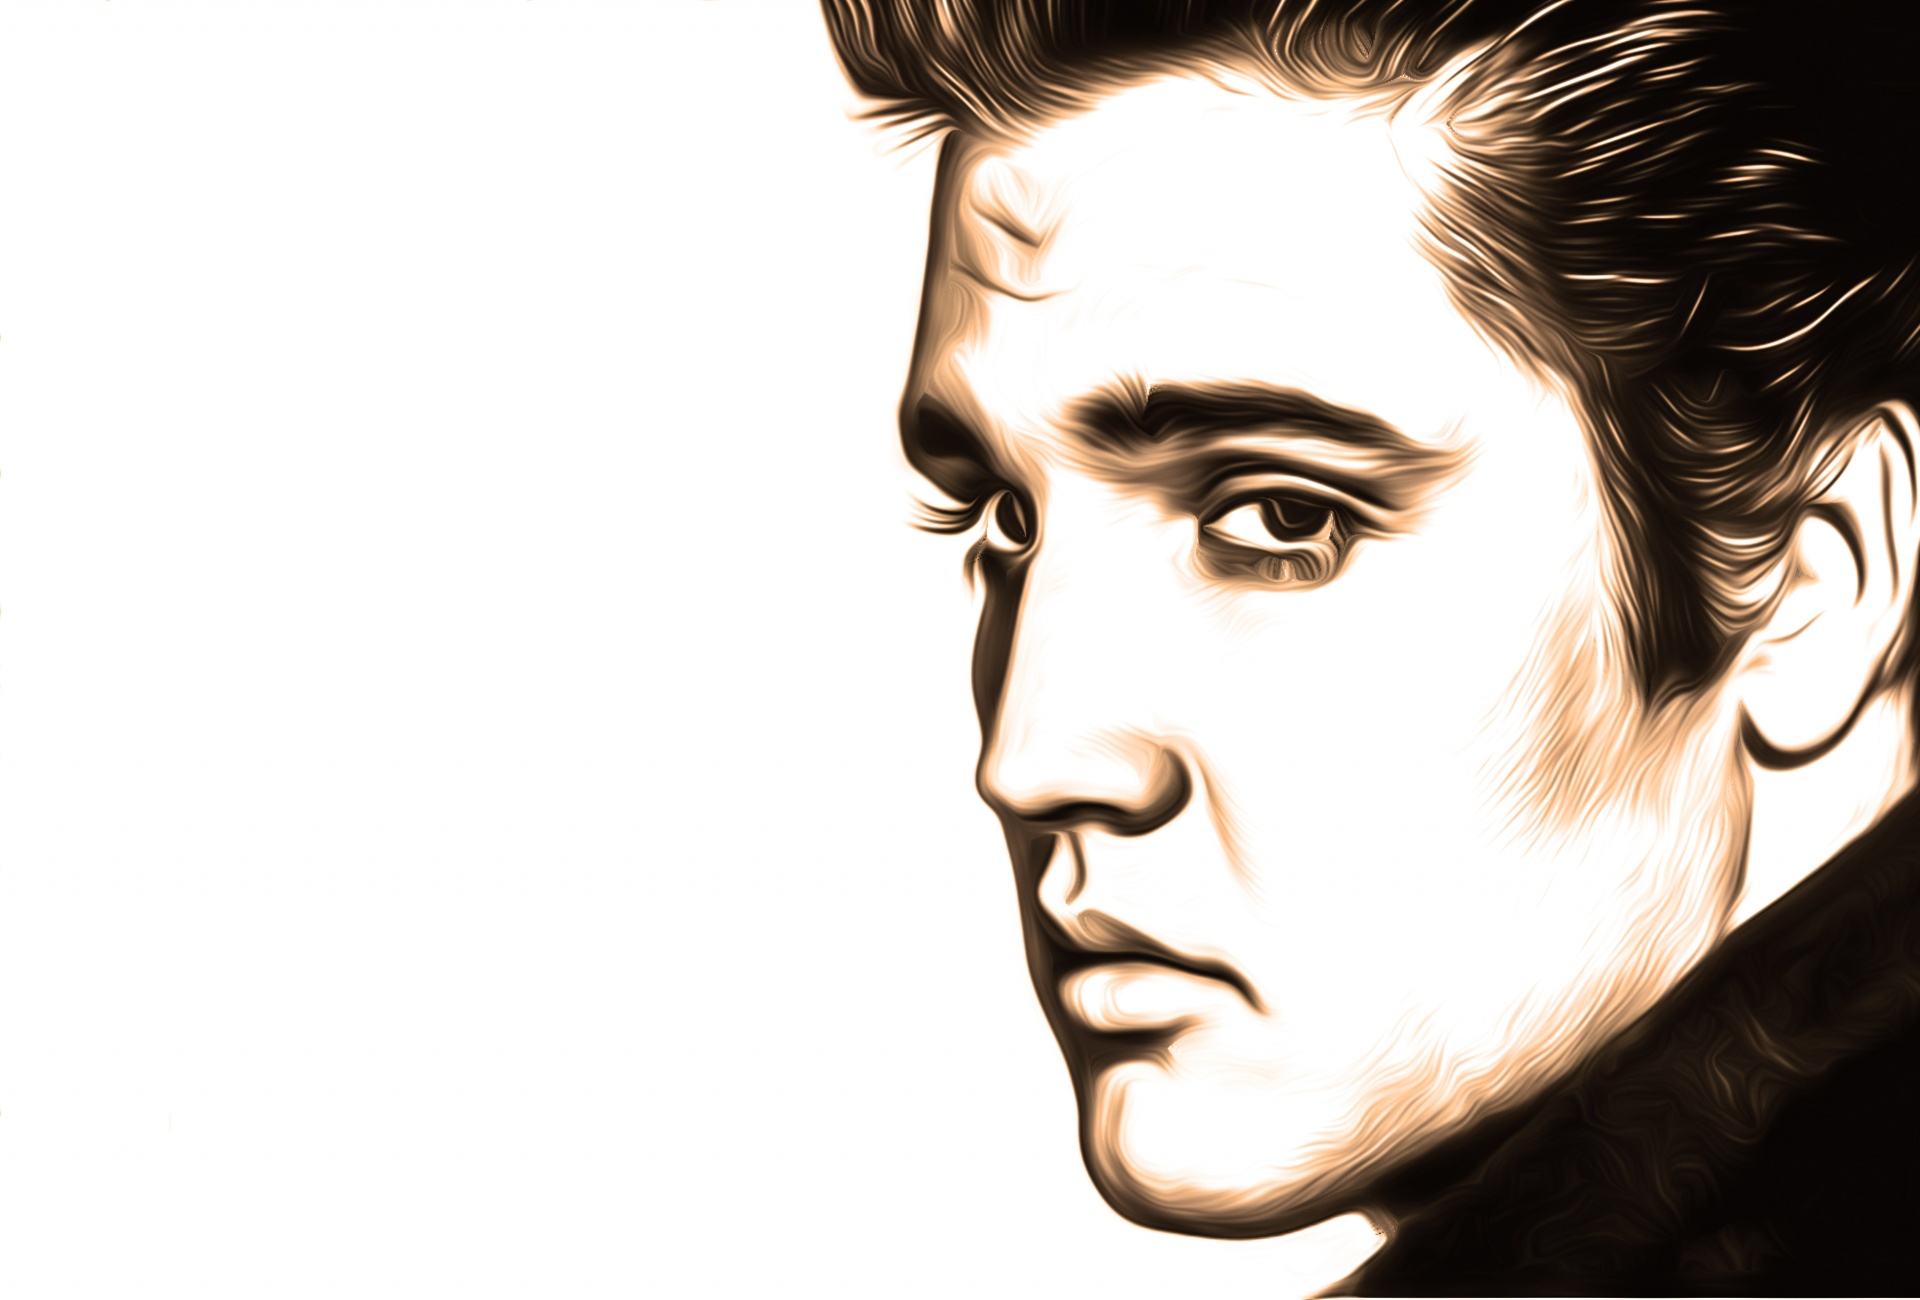 In this comprehensive biography of Elvis Presley you will find a complete history of Elvis dynamic life story from his humble beginnings through his rise to stardom